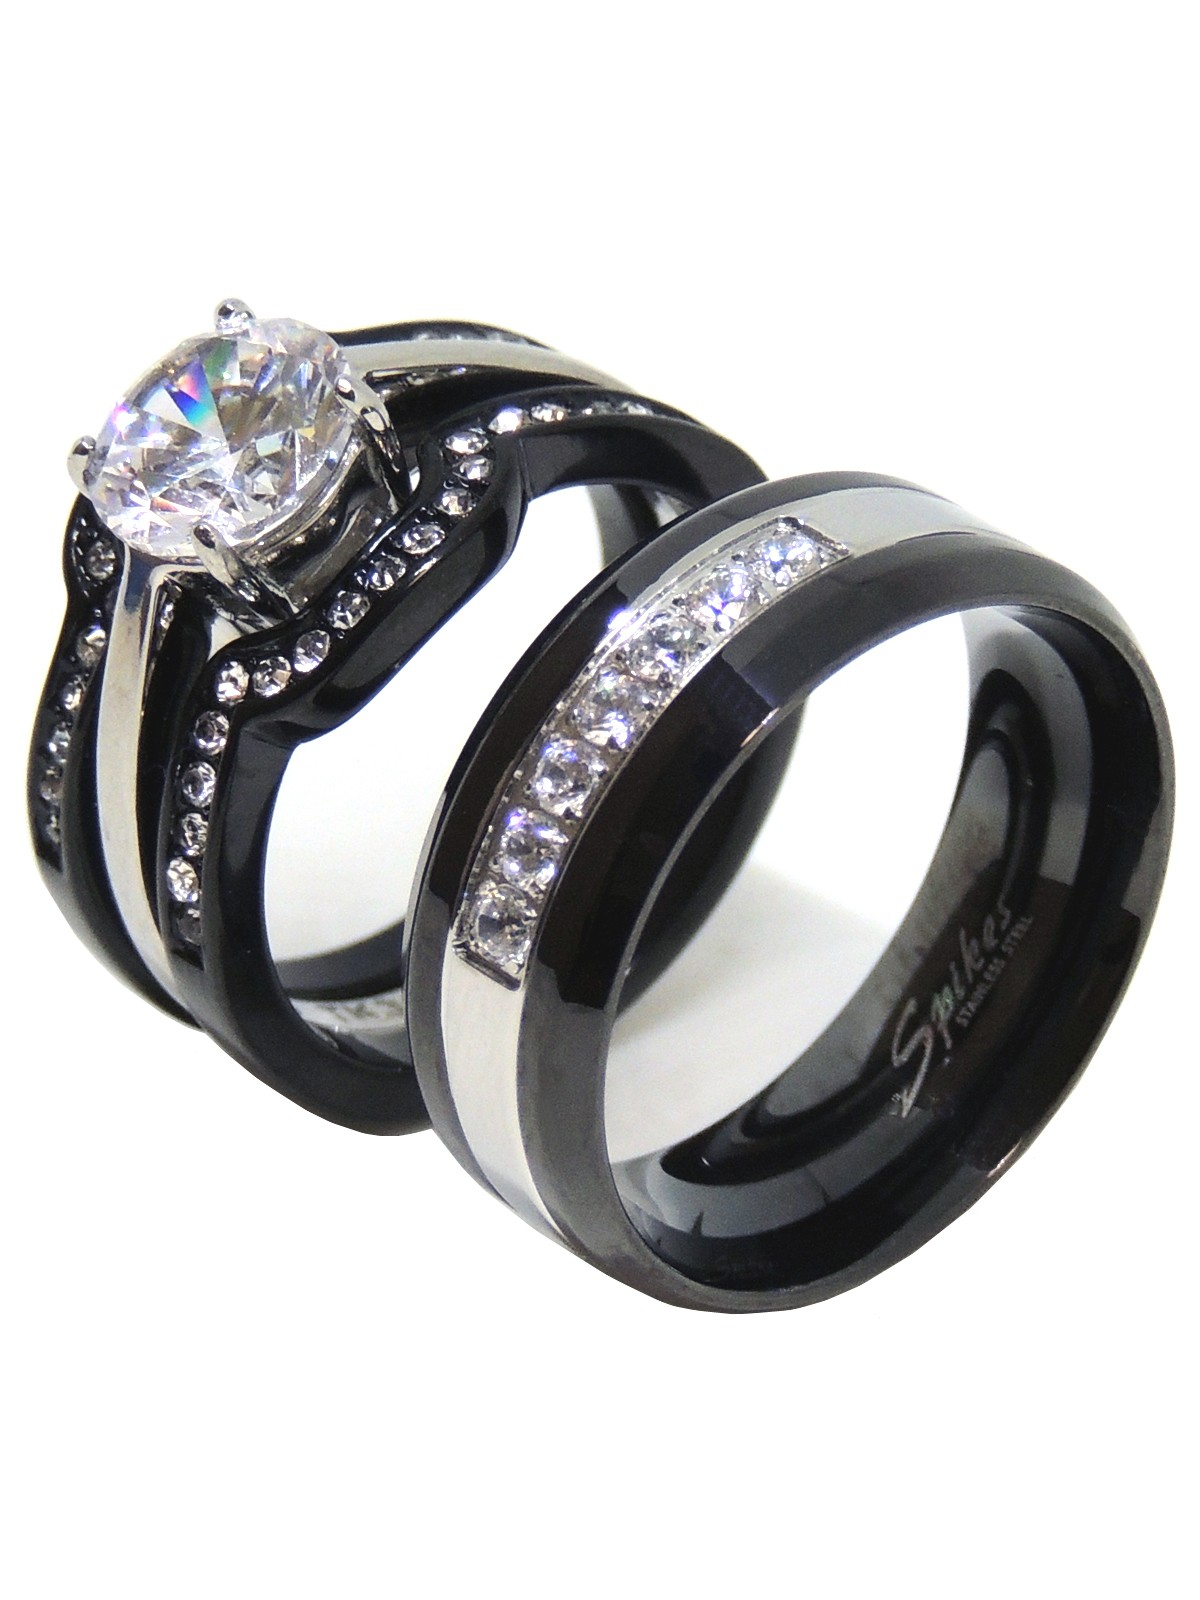 cdf0783d12225 His Hers Couples Ring Set Womens Round CZ Promise Two Tone Ring Mens 7 CZs  Wedding Band- Size W6M12